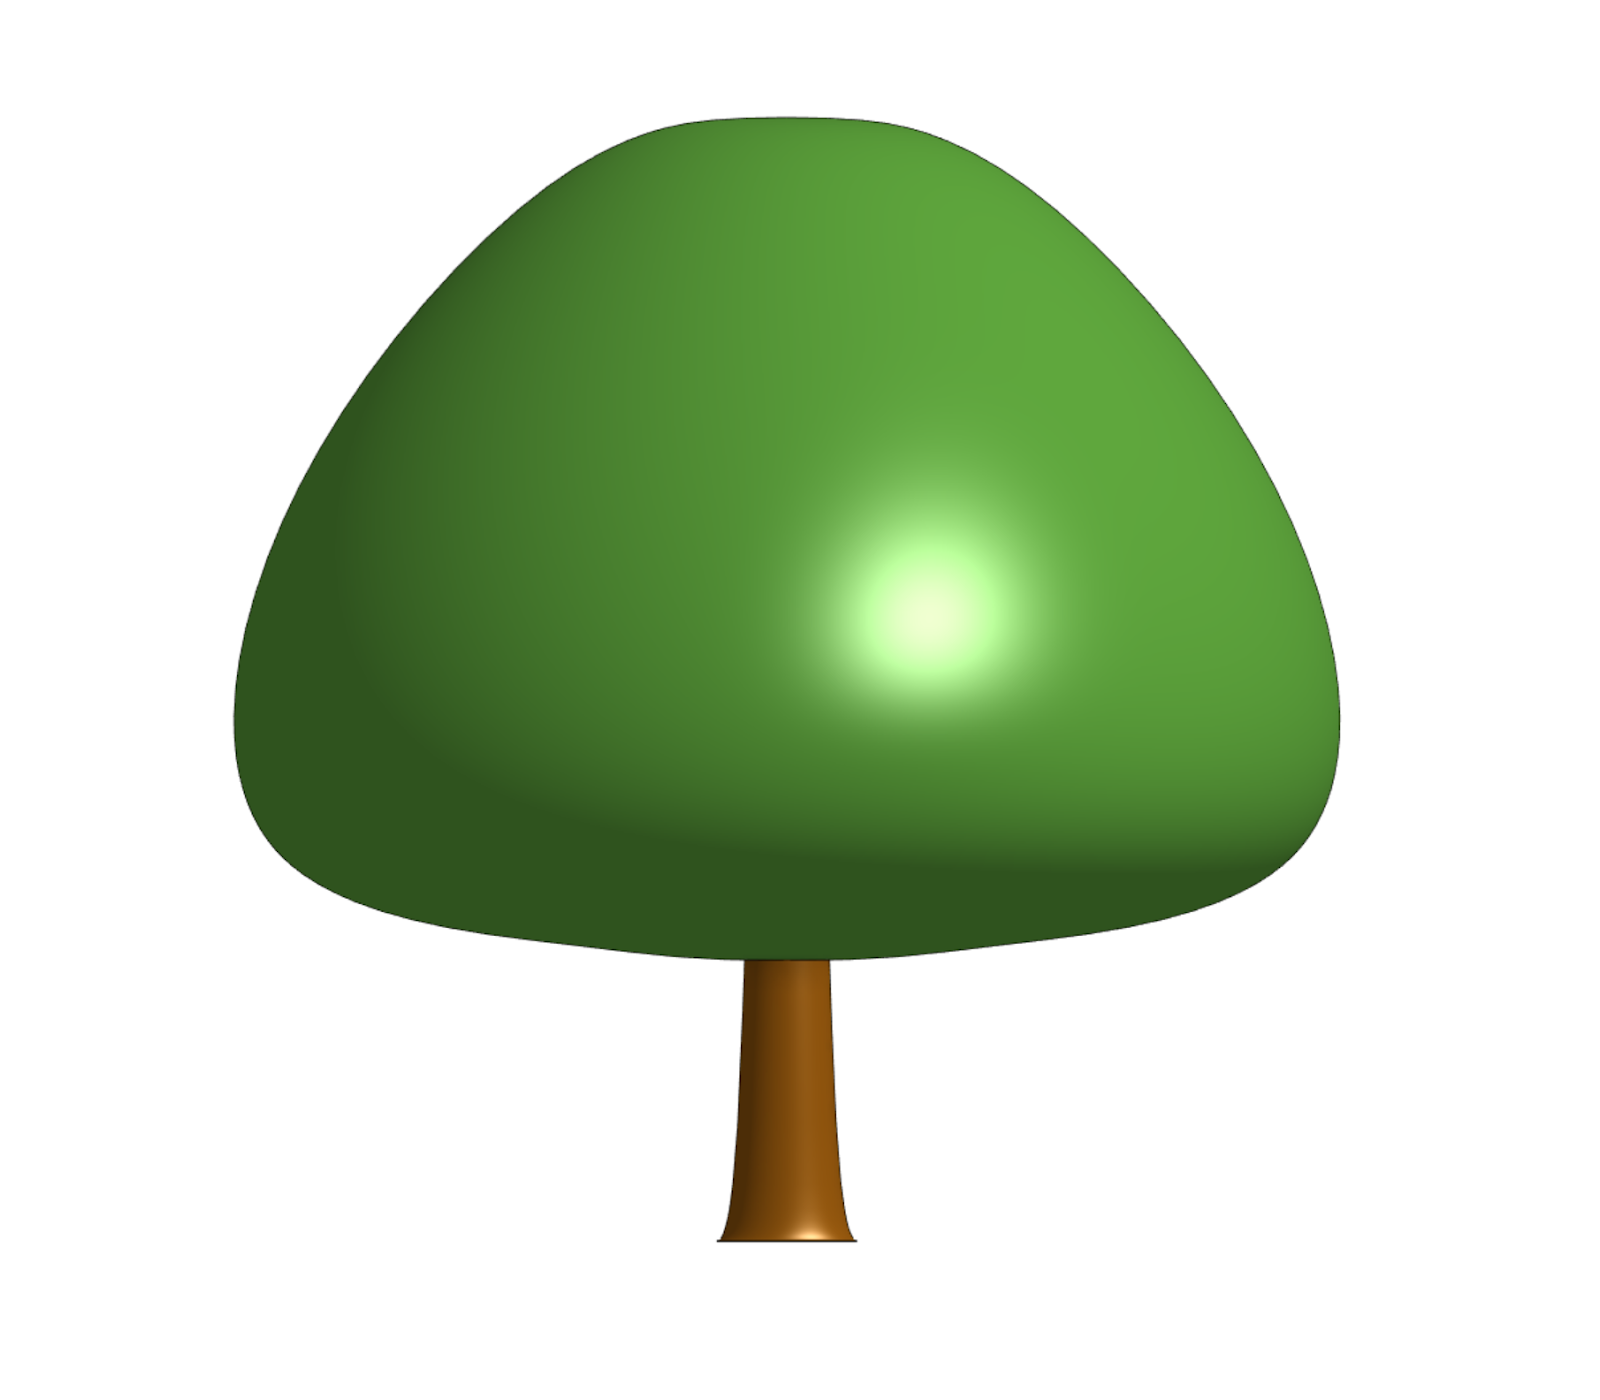 An ideal representative of a tree for PWC